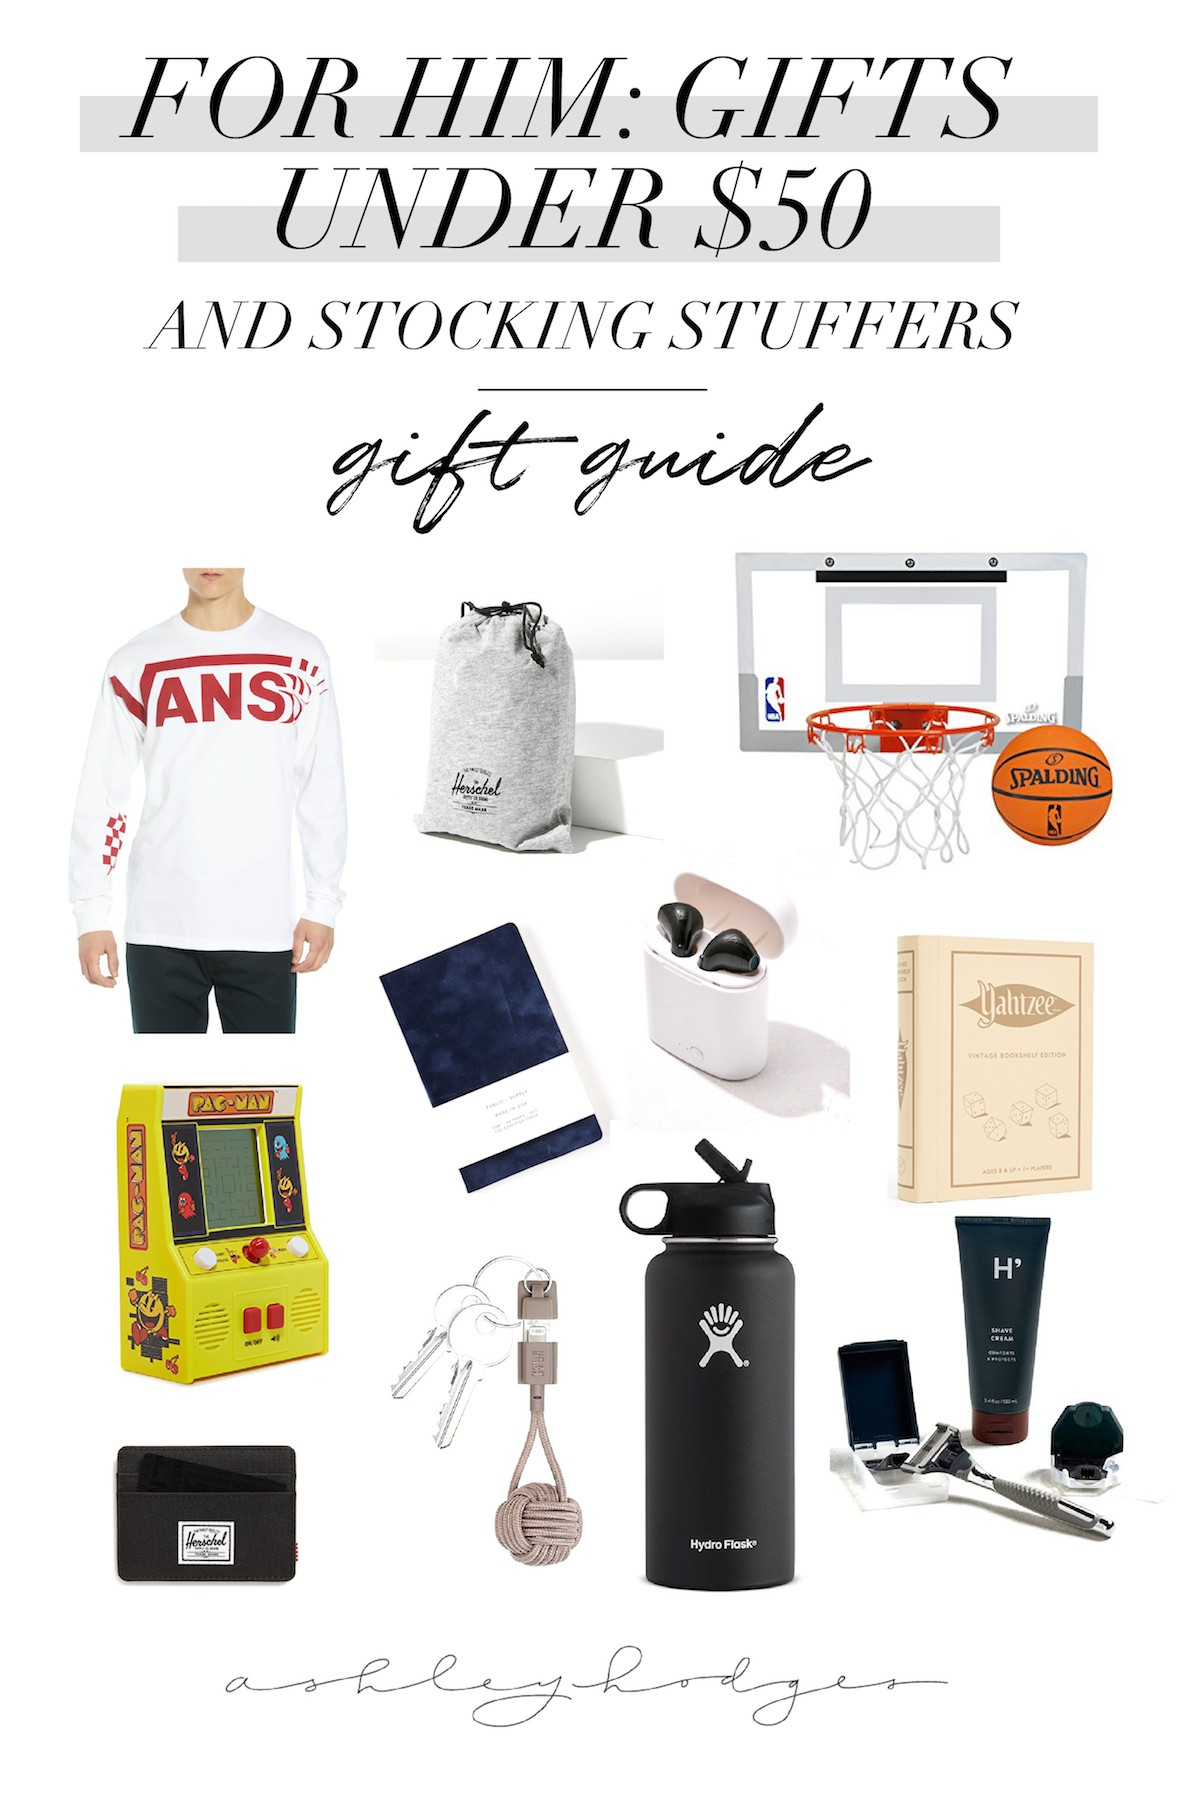 Top Gift Guide Gifts For Him Under 50 Stocking Stuffers